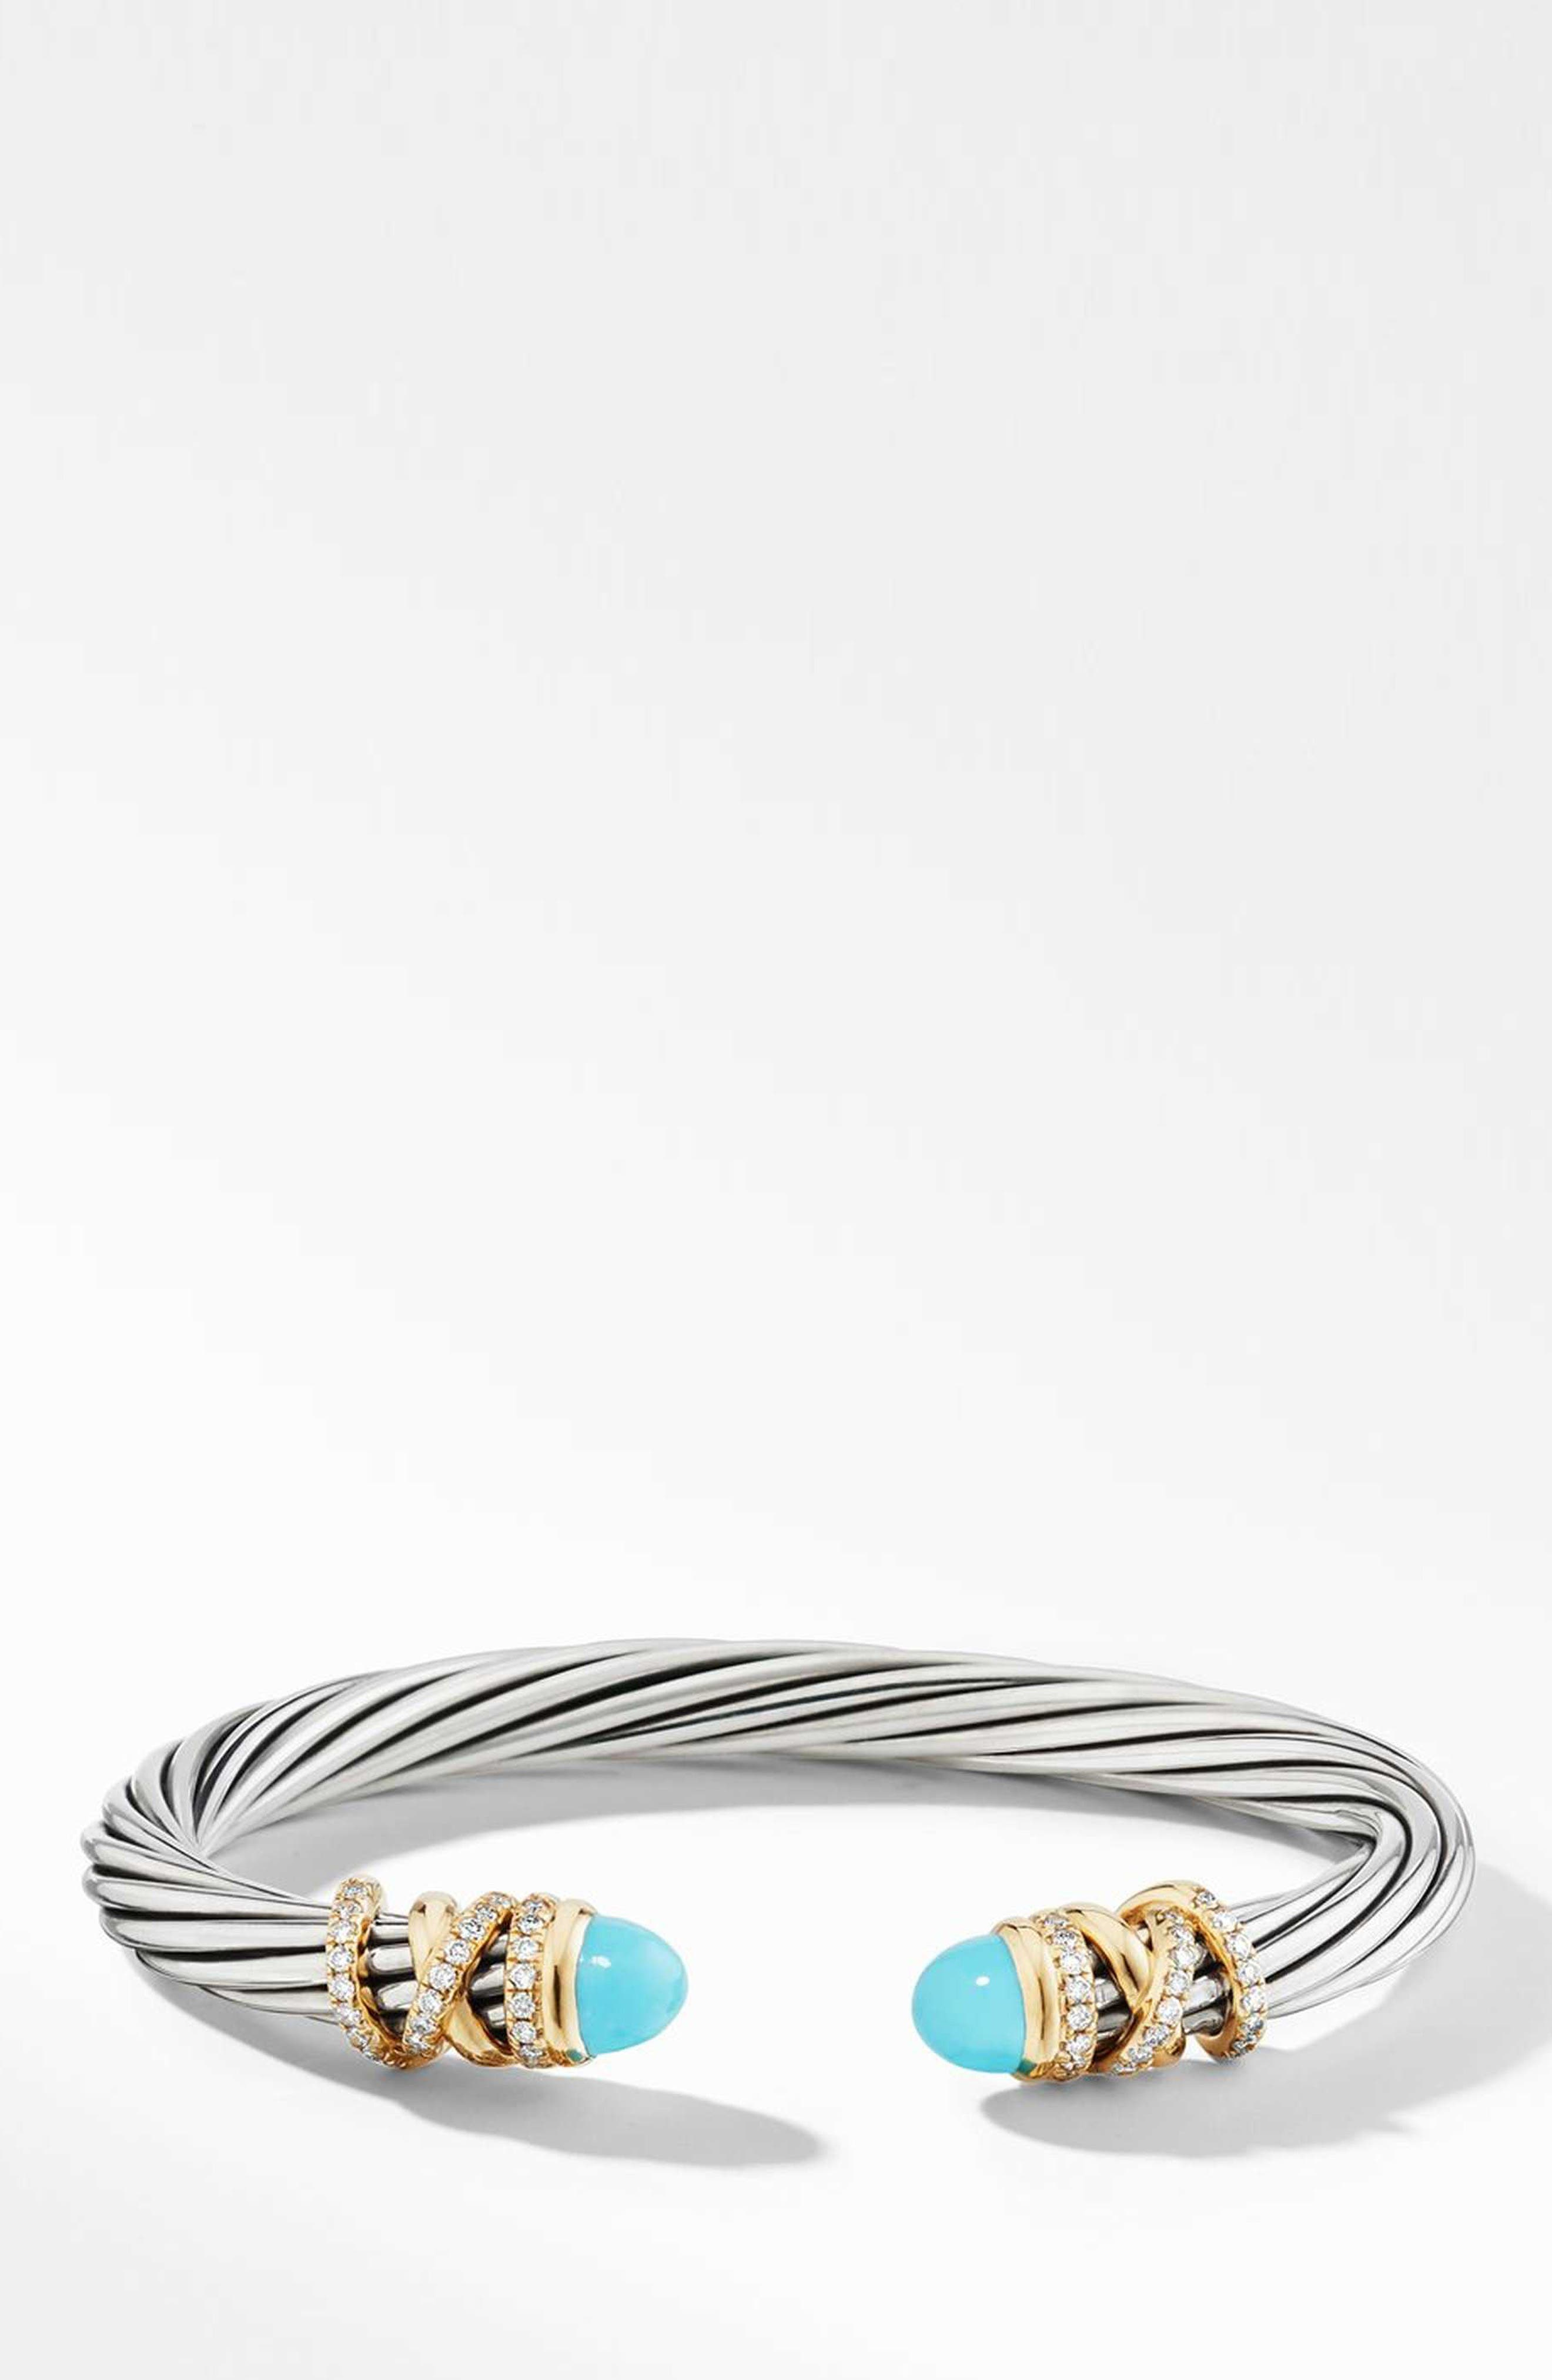 Helena Bracelet with Diamonds,                         Main,                         color, GOLD/ SILVER/ TURQUOISE